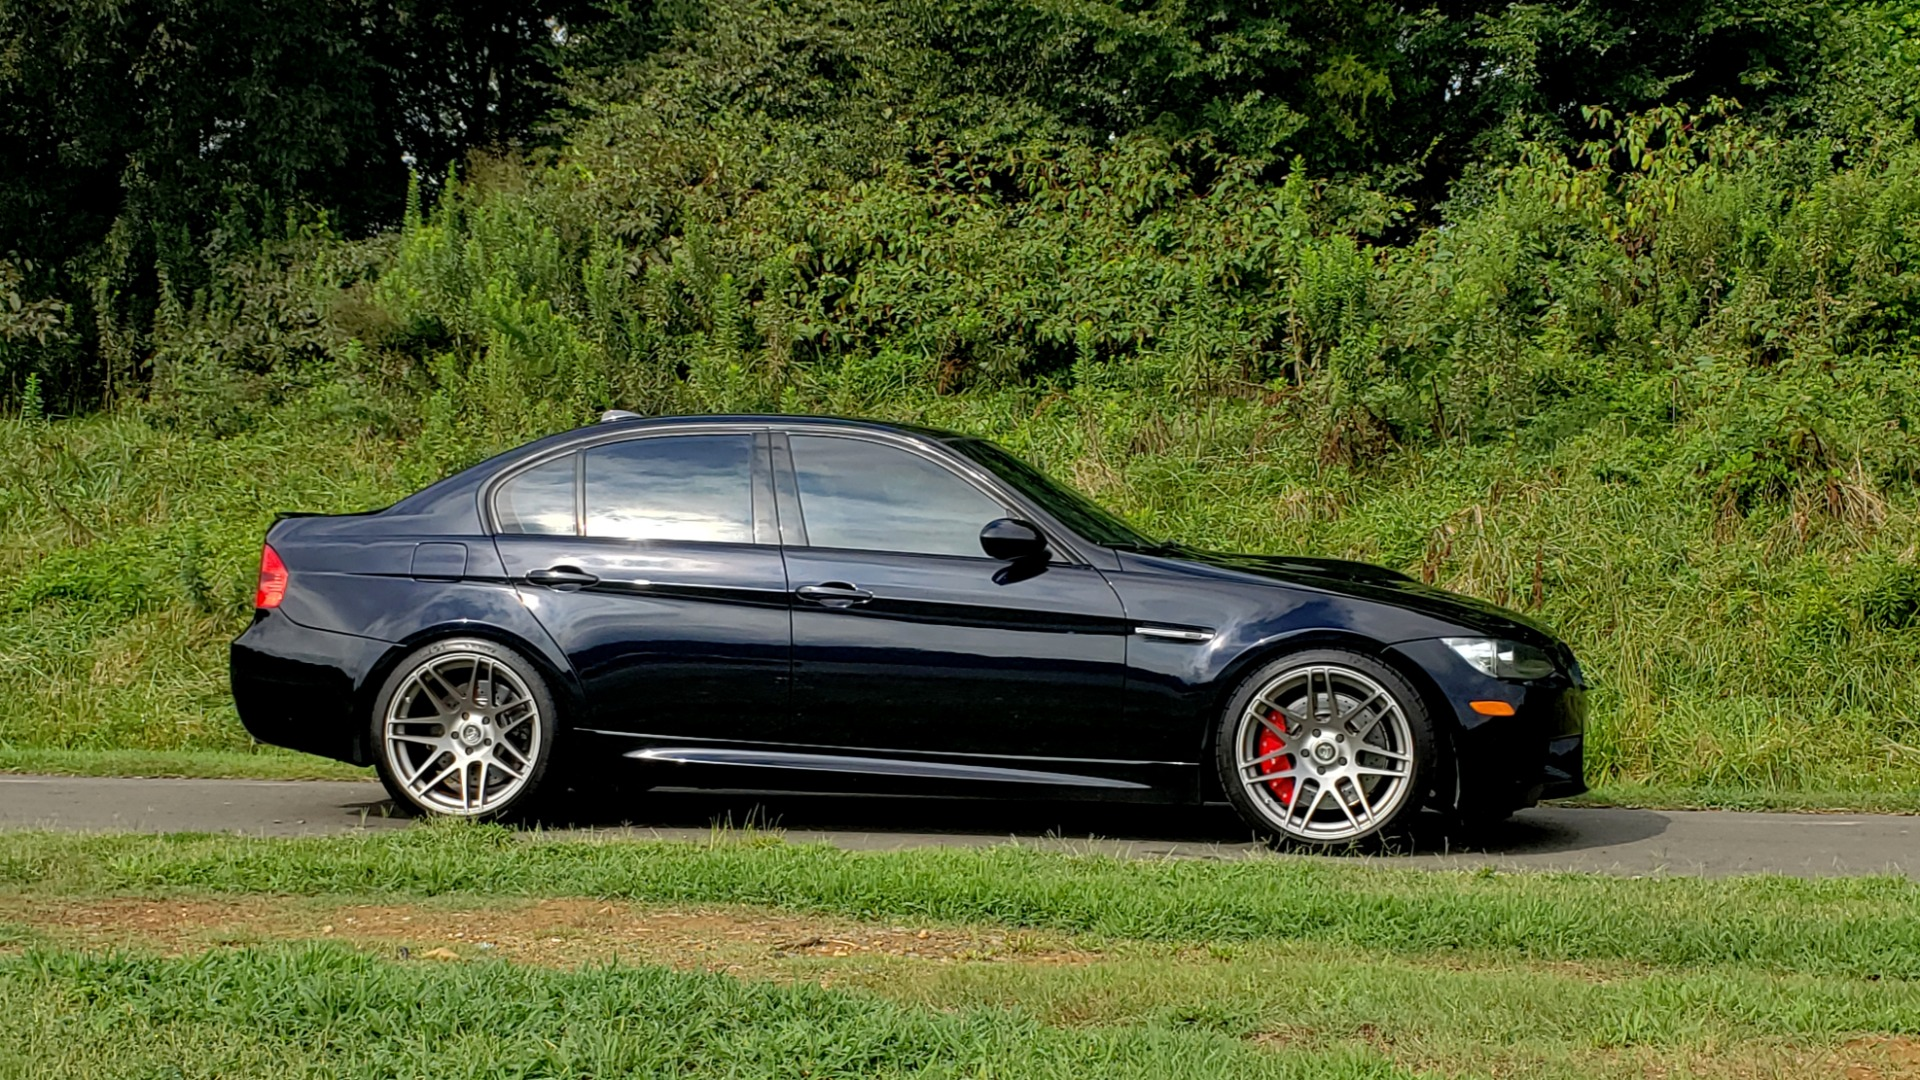 Used 2008 BMW 3 SERIES M3 PREMIUM / TECH / PDC / SUNROOF / 4.0L V8 / 6-SPD MANUAL for sale Sold at Formula Imports in Charlotte NC 28227 8